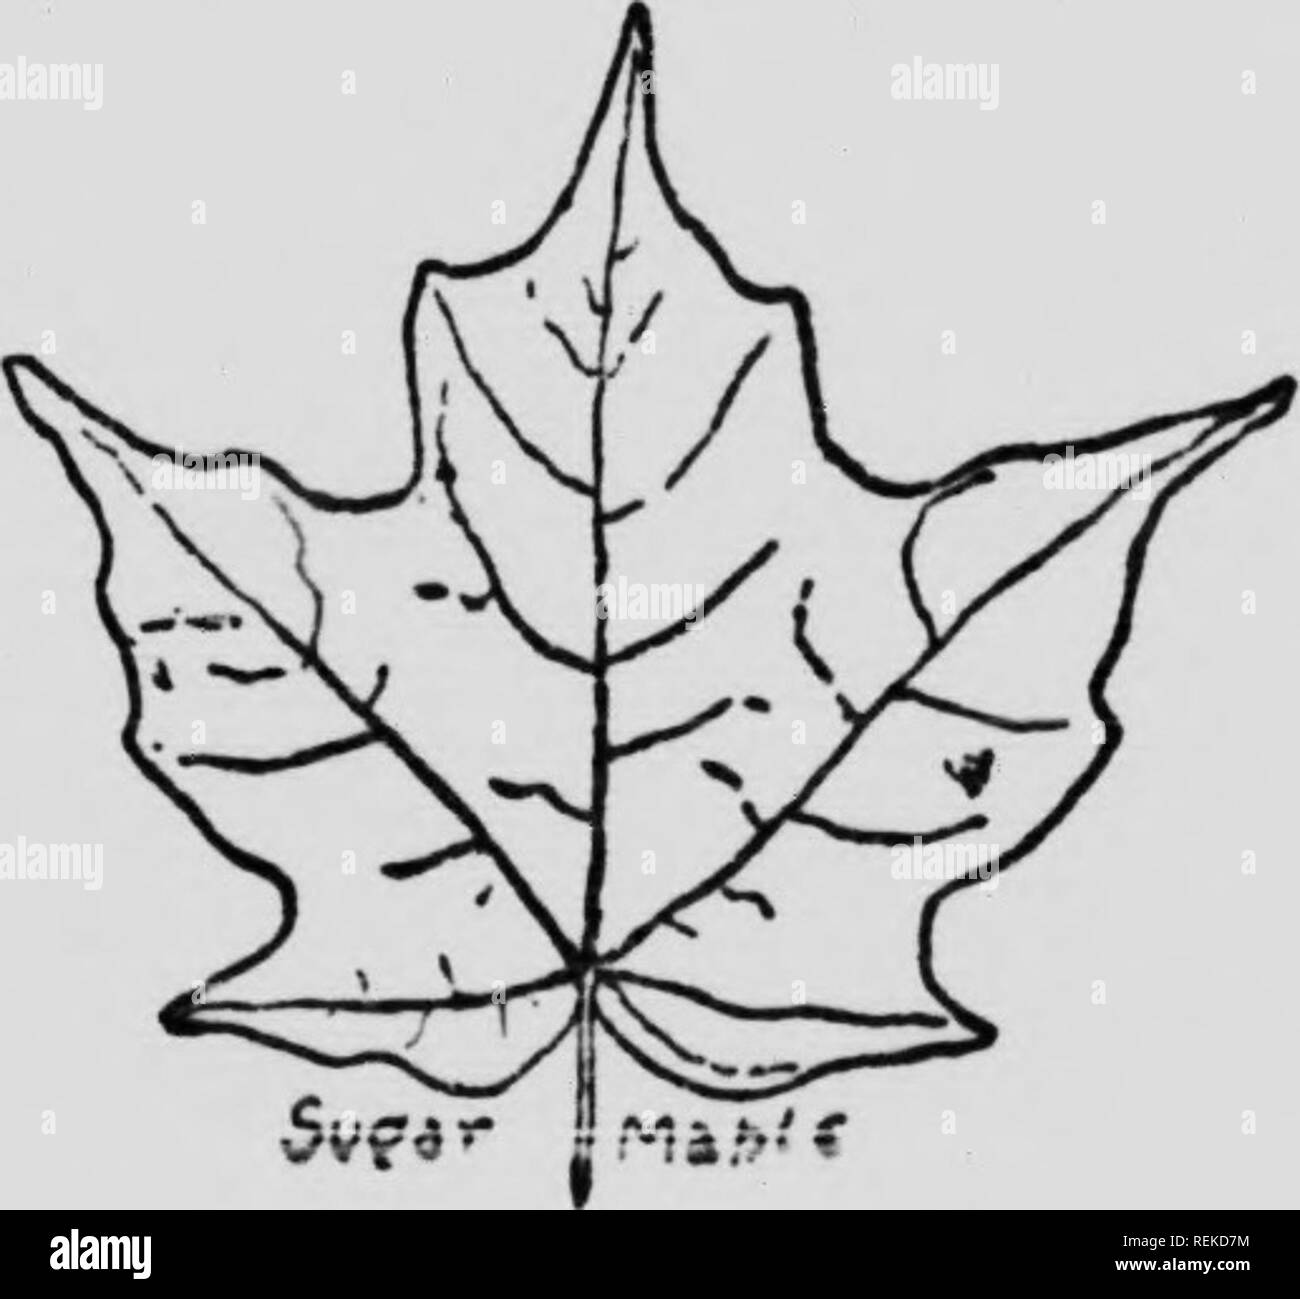 Rock Sugar Black and White Stock Photos & Images - Alamy